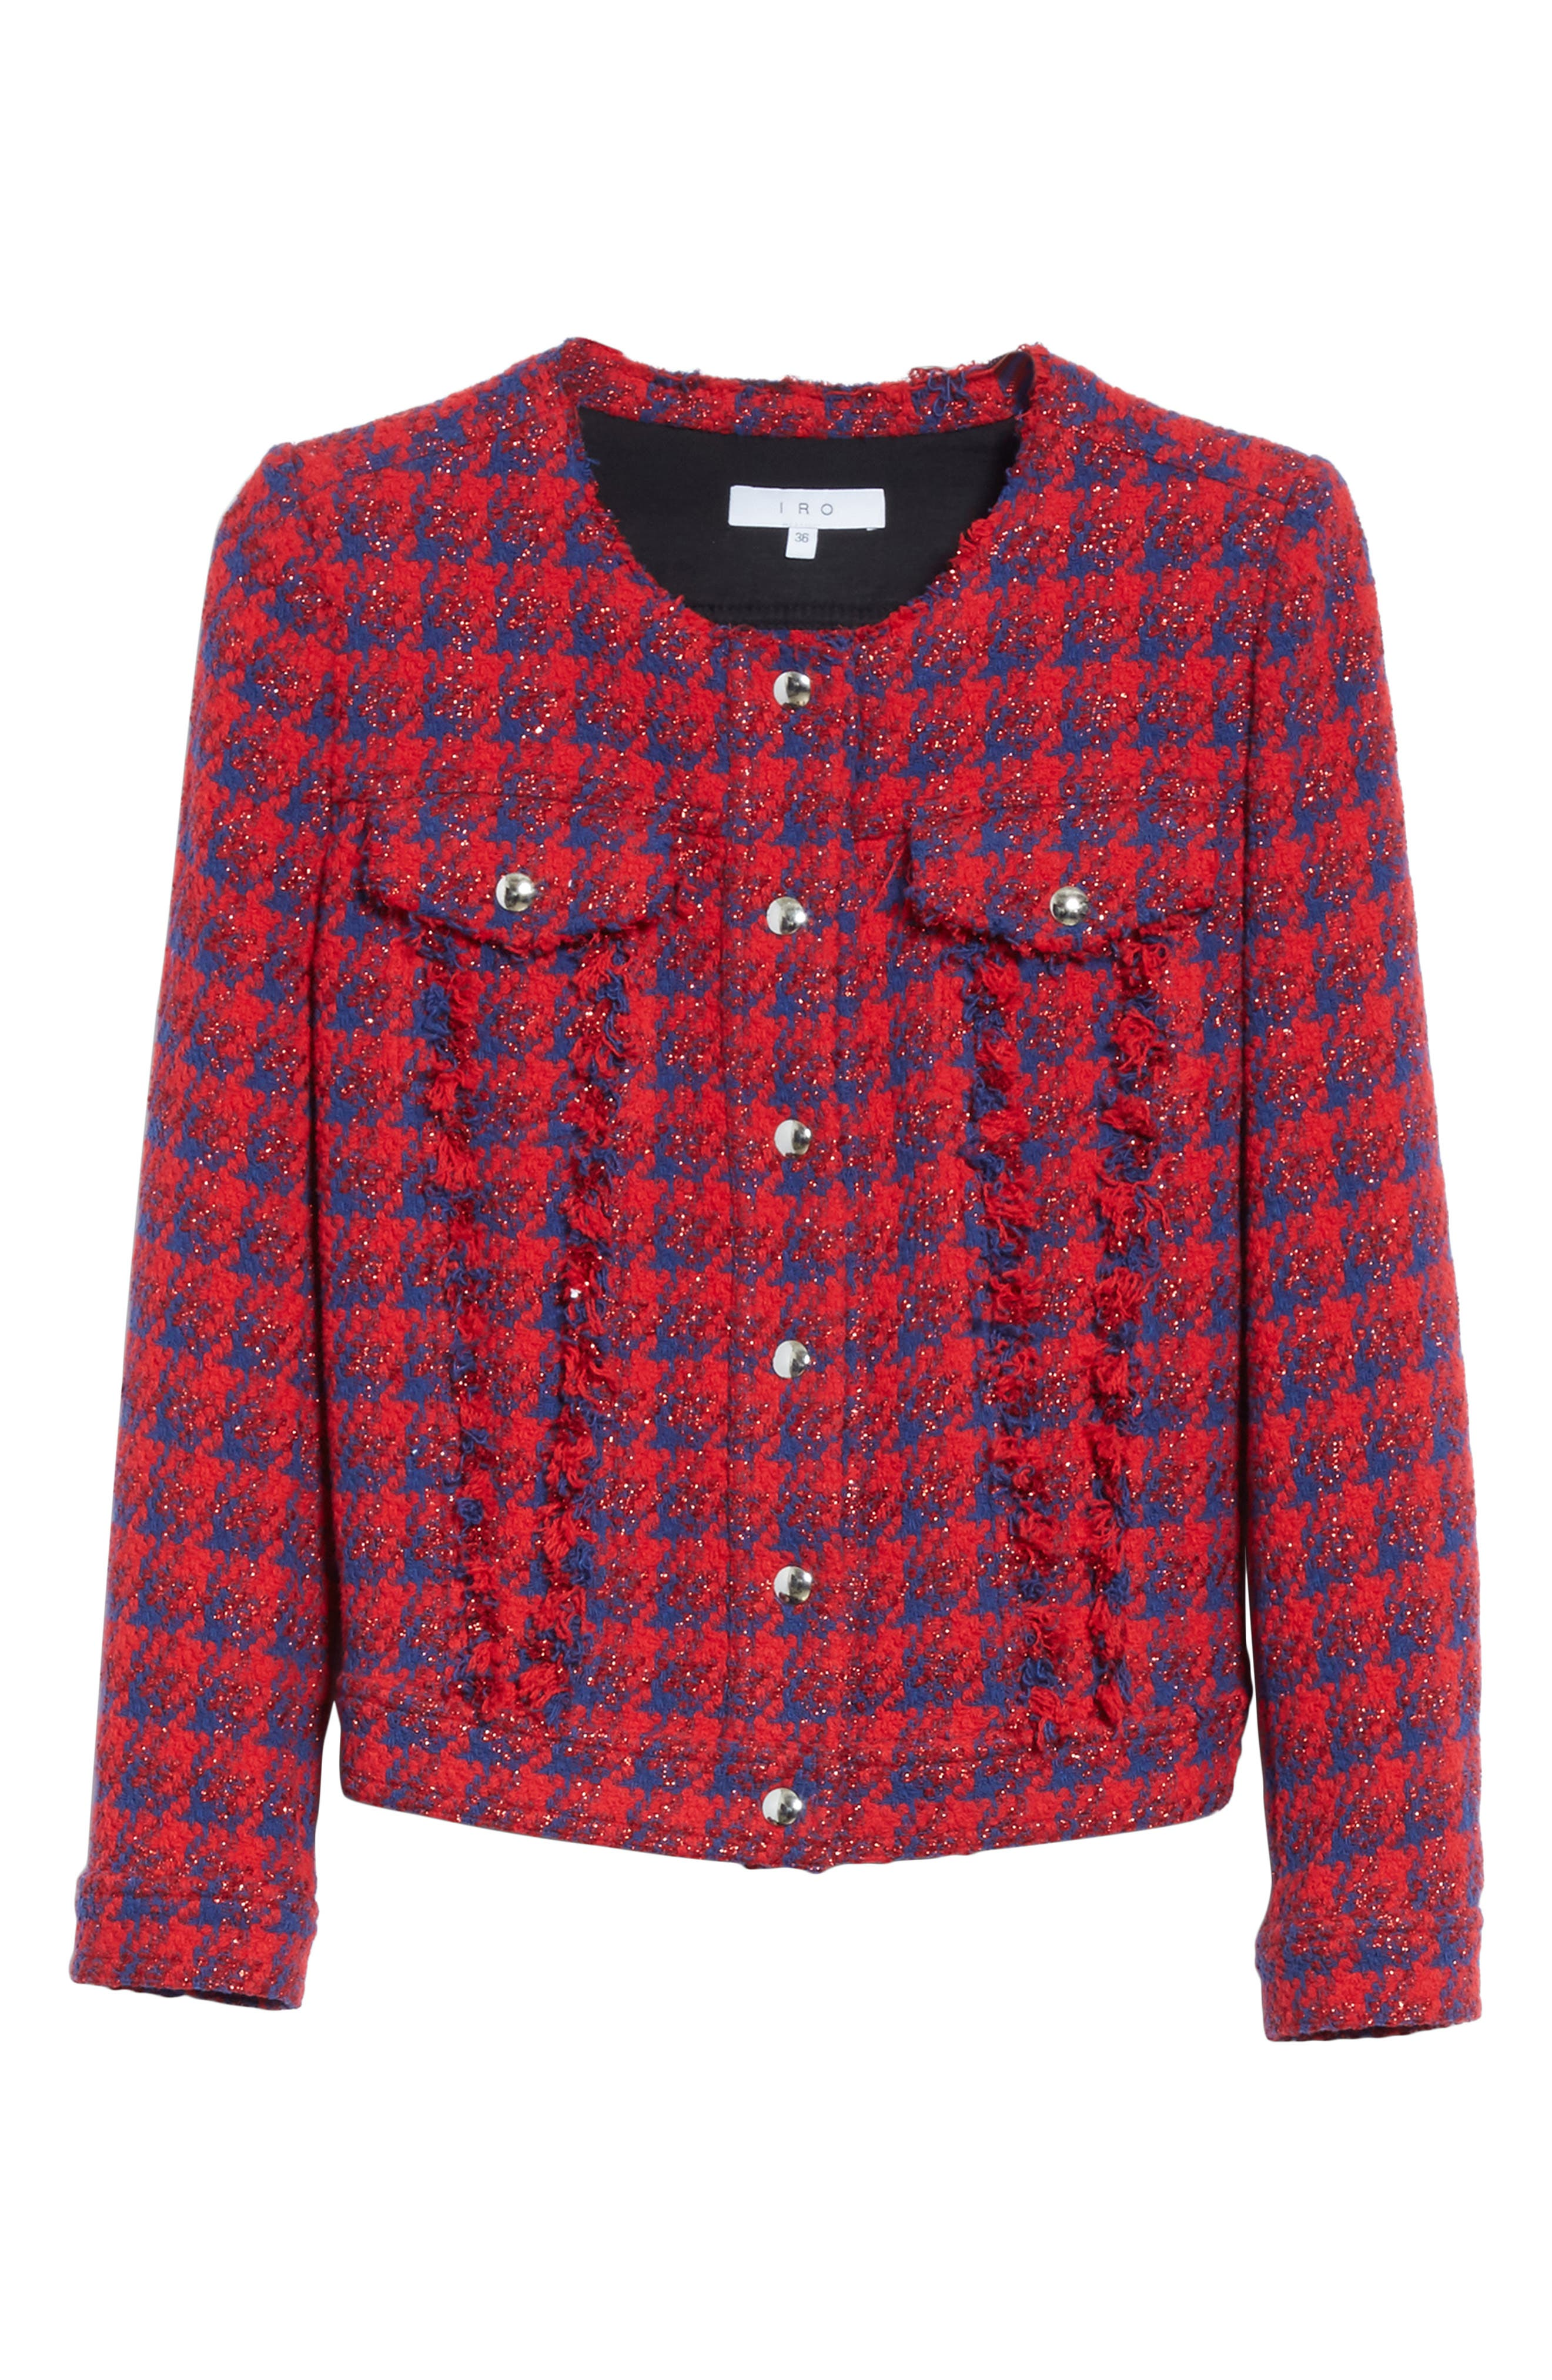 Quilombre Houndstooth Tweed Jacket,                             Alternate thumbnail 5, color,                             630